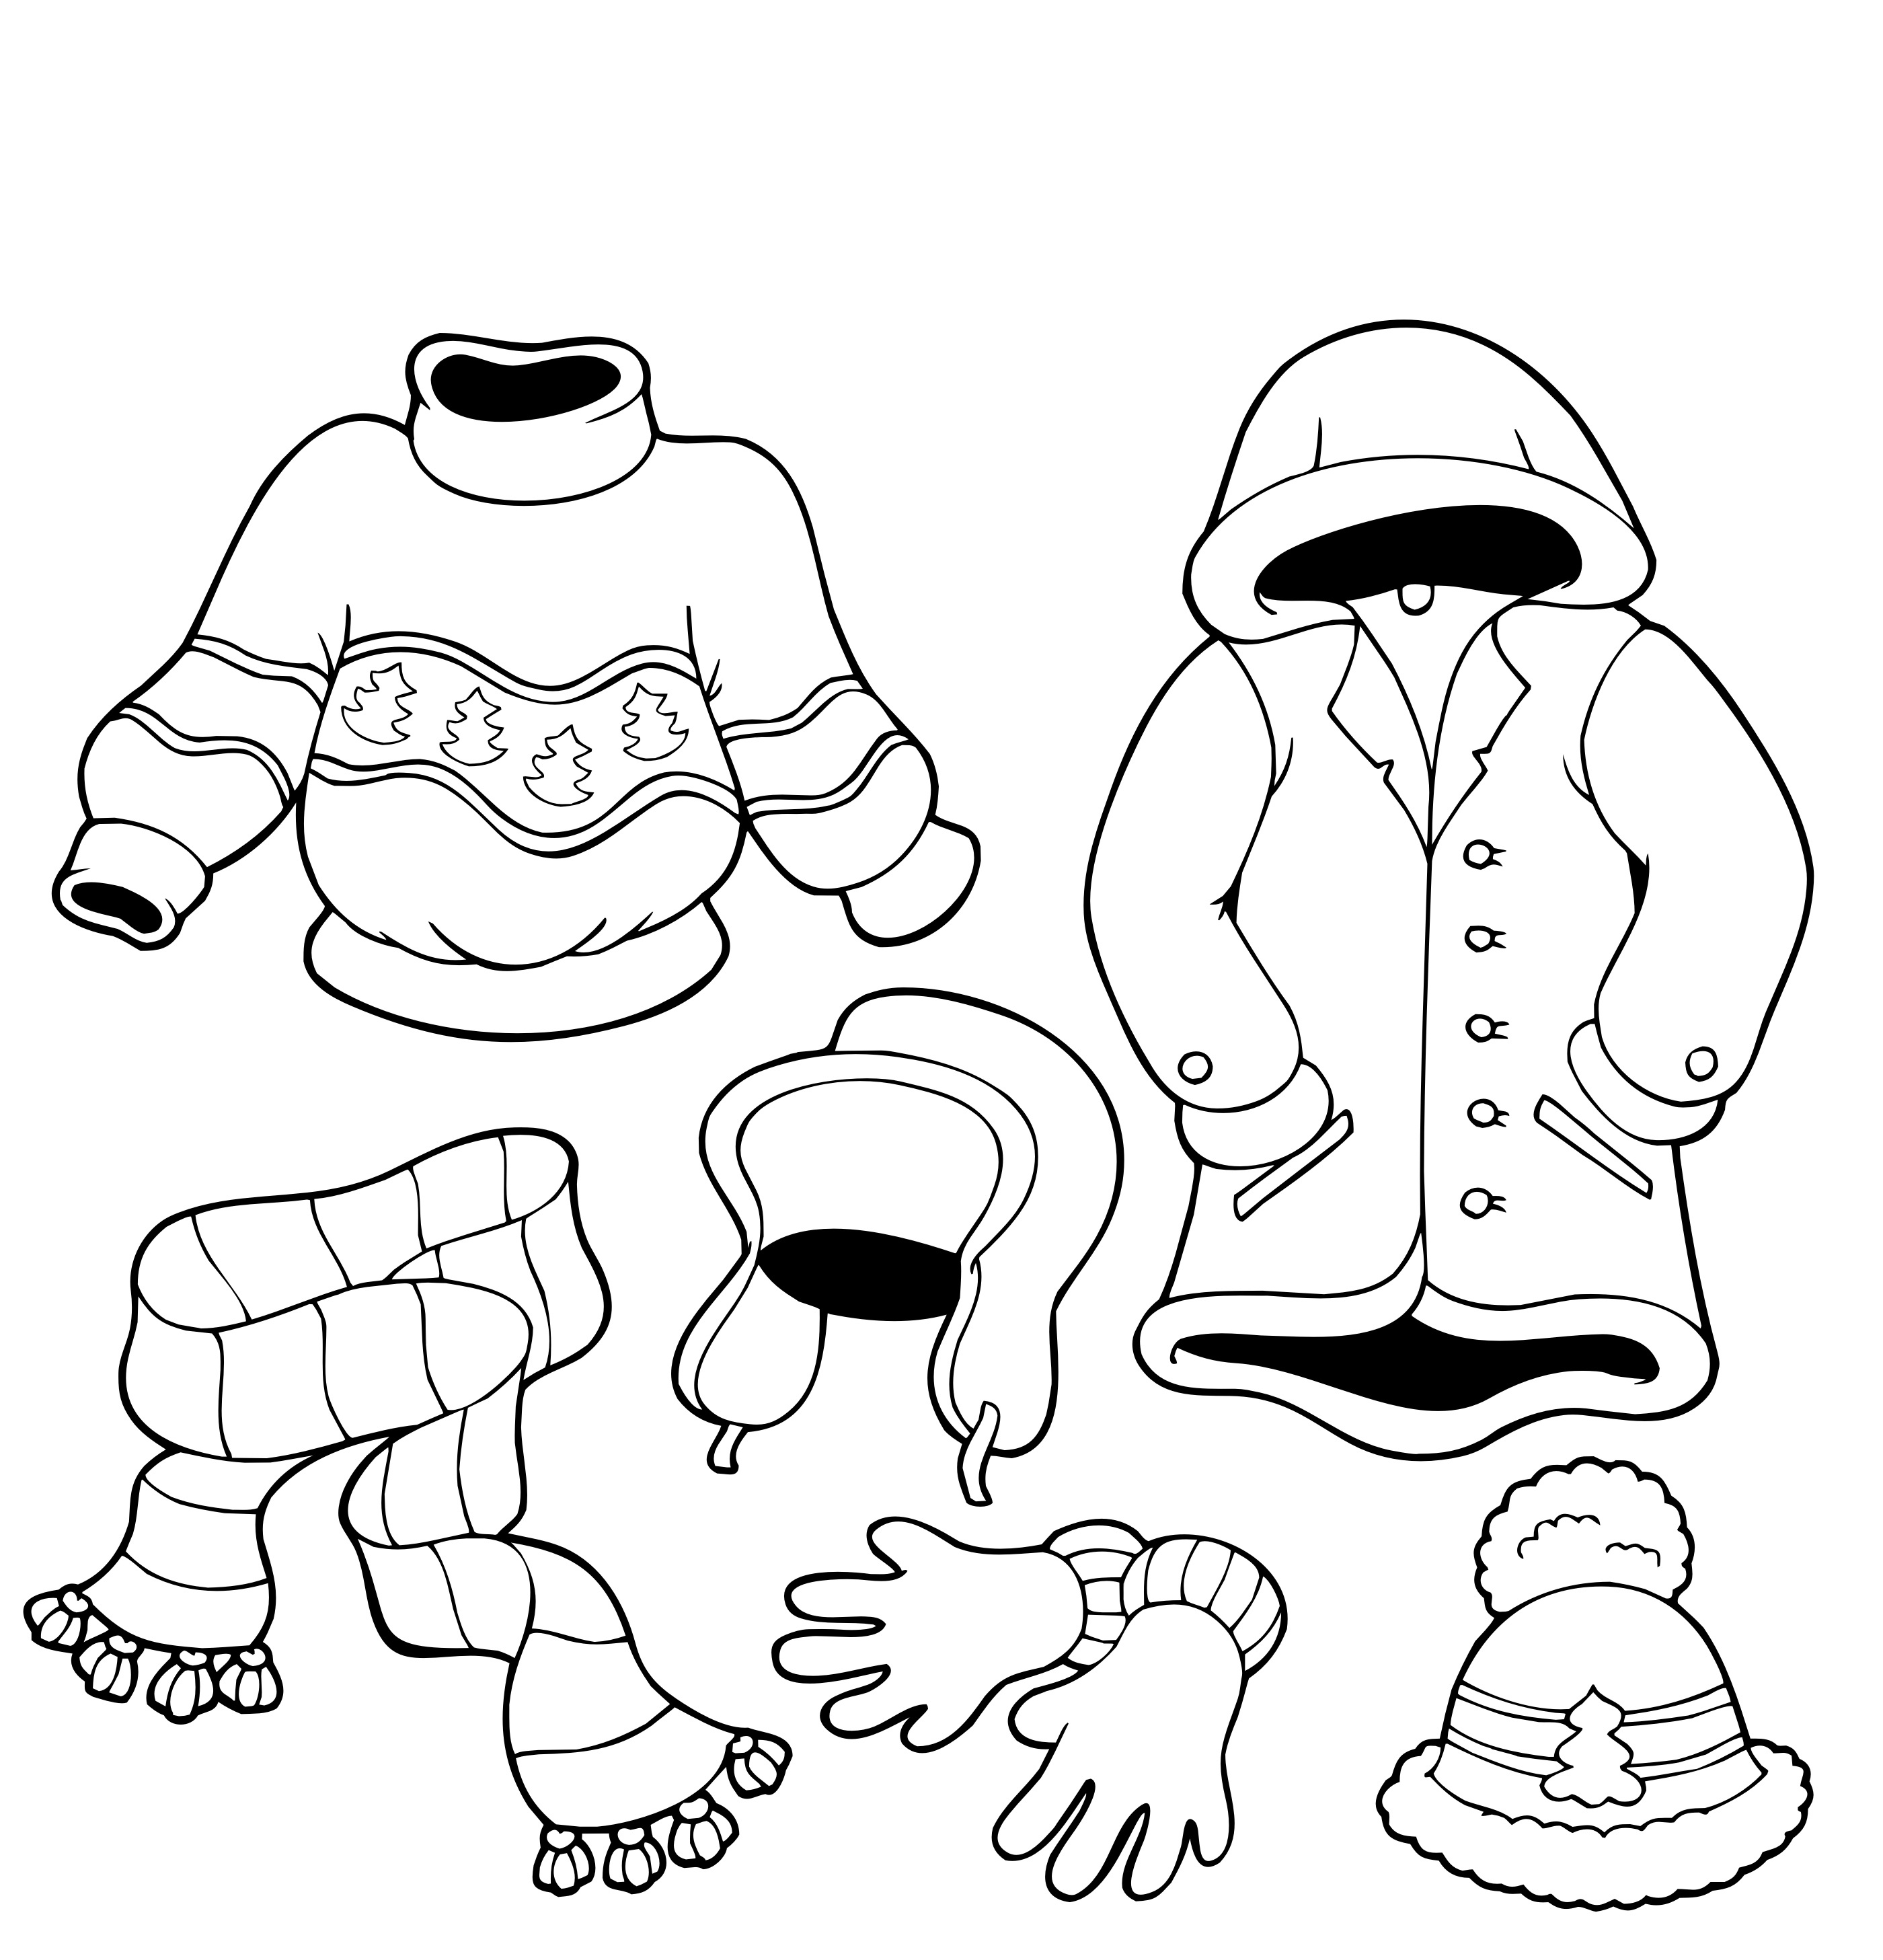 winter coloring sheets printable top 25 free printable winter coloring pages online winter sheets printable coloring